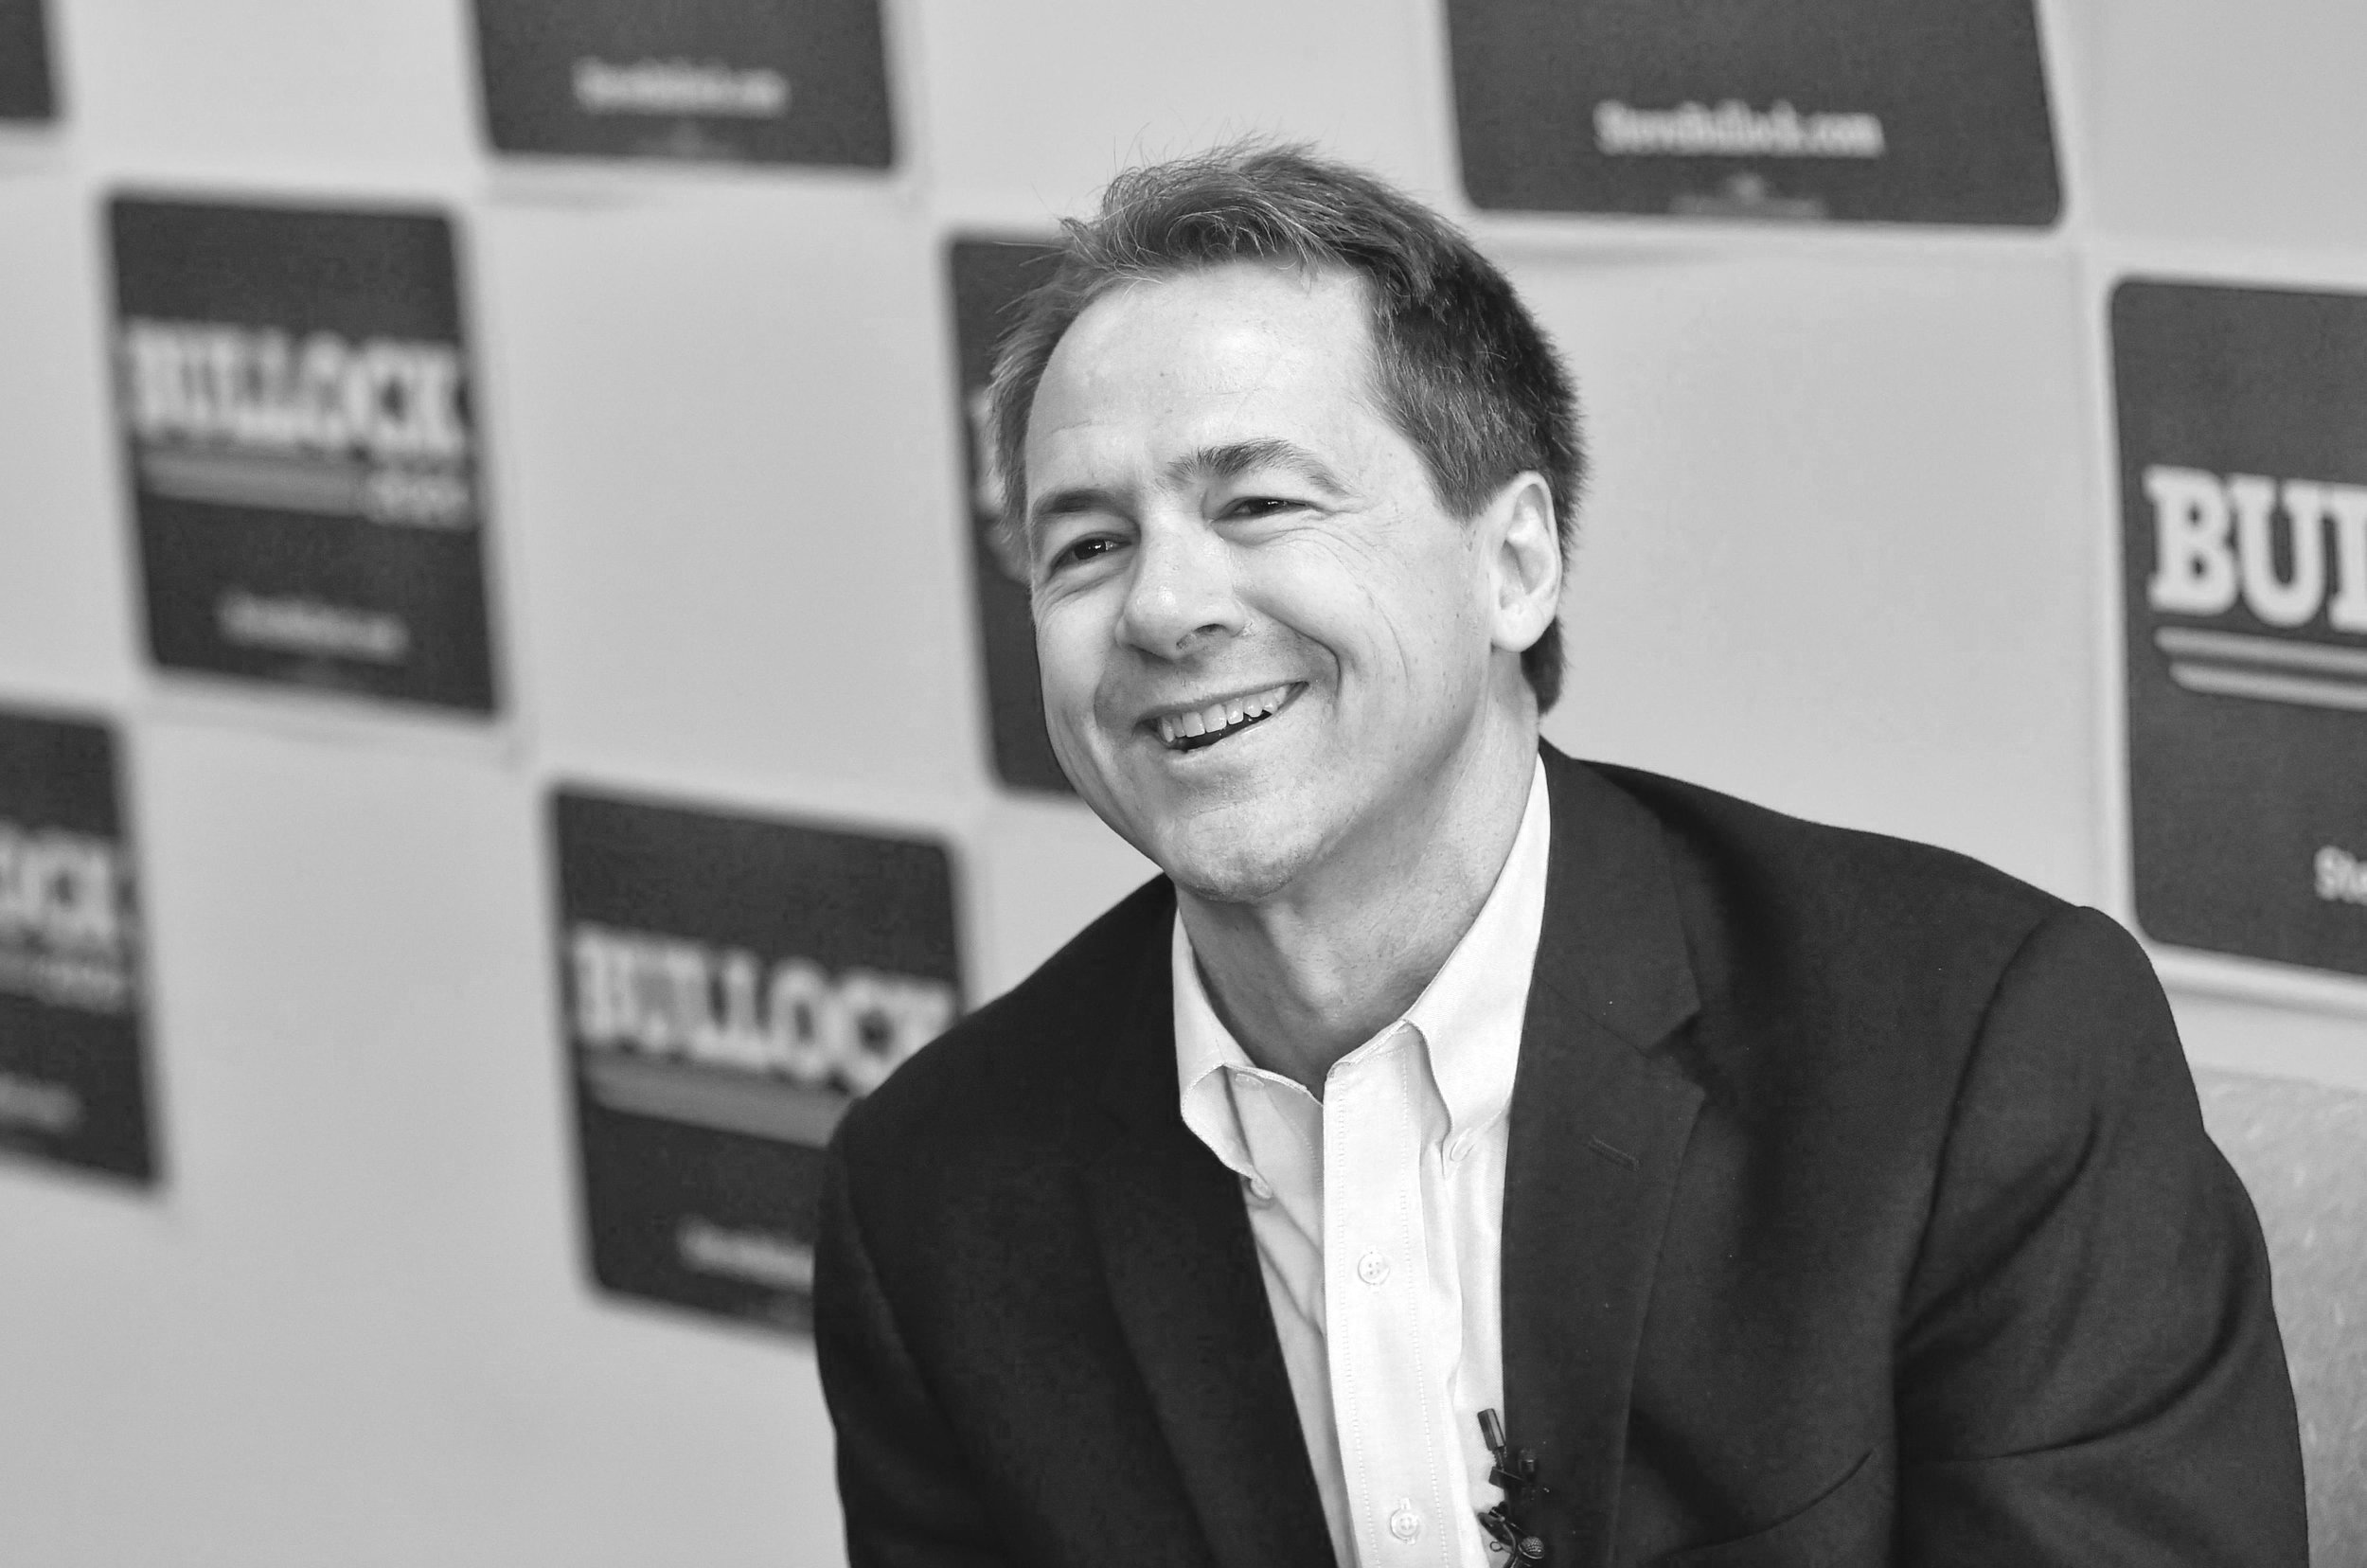 Governor Steve Bullock - Politician, attorney, 24th Governor of Montana